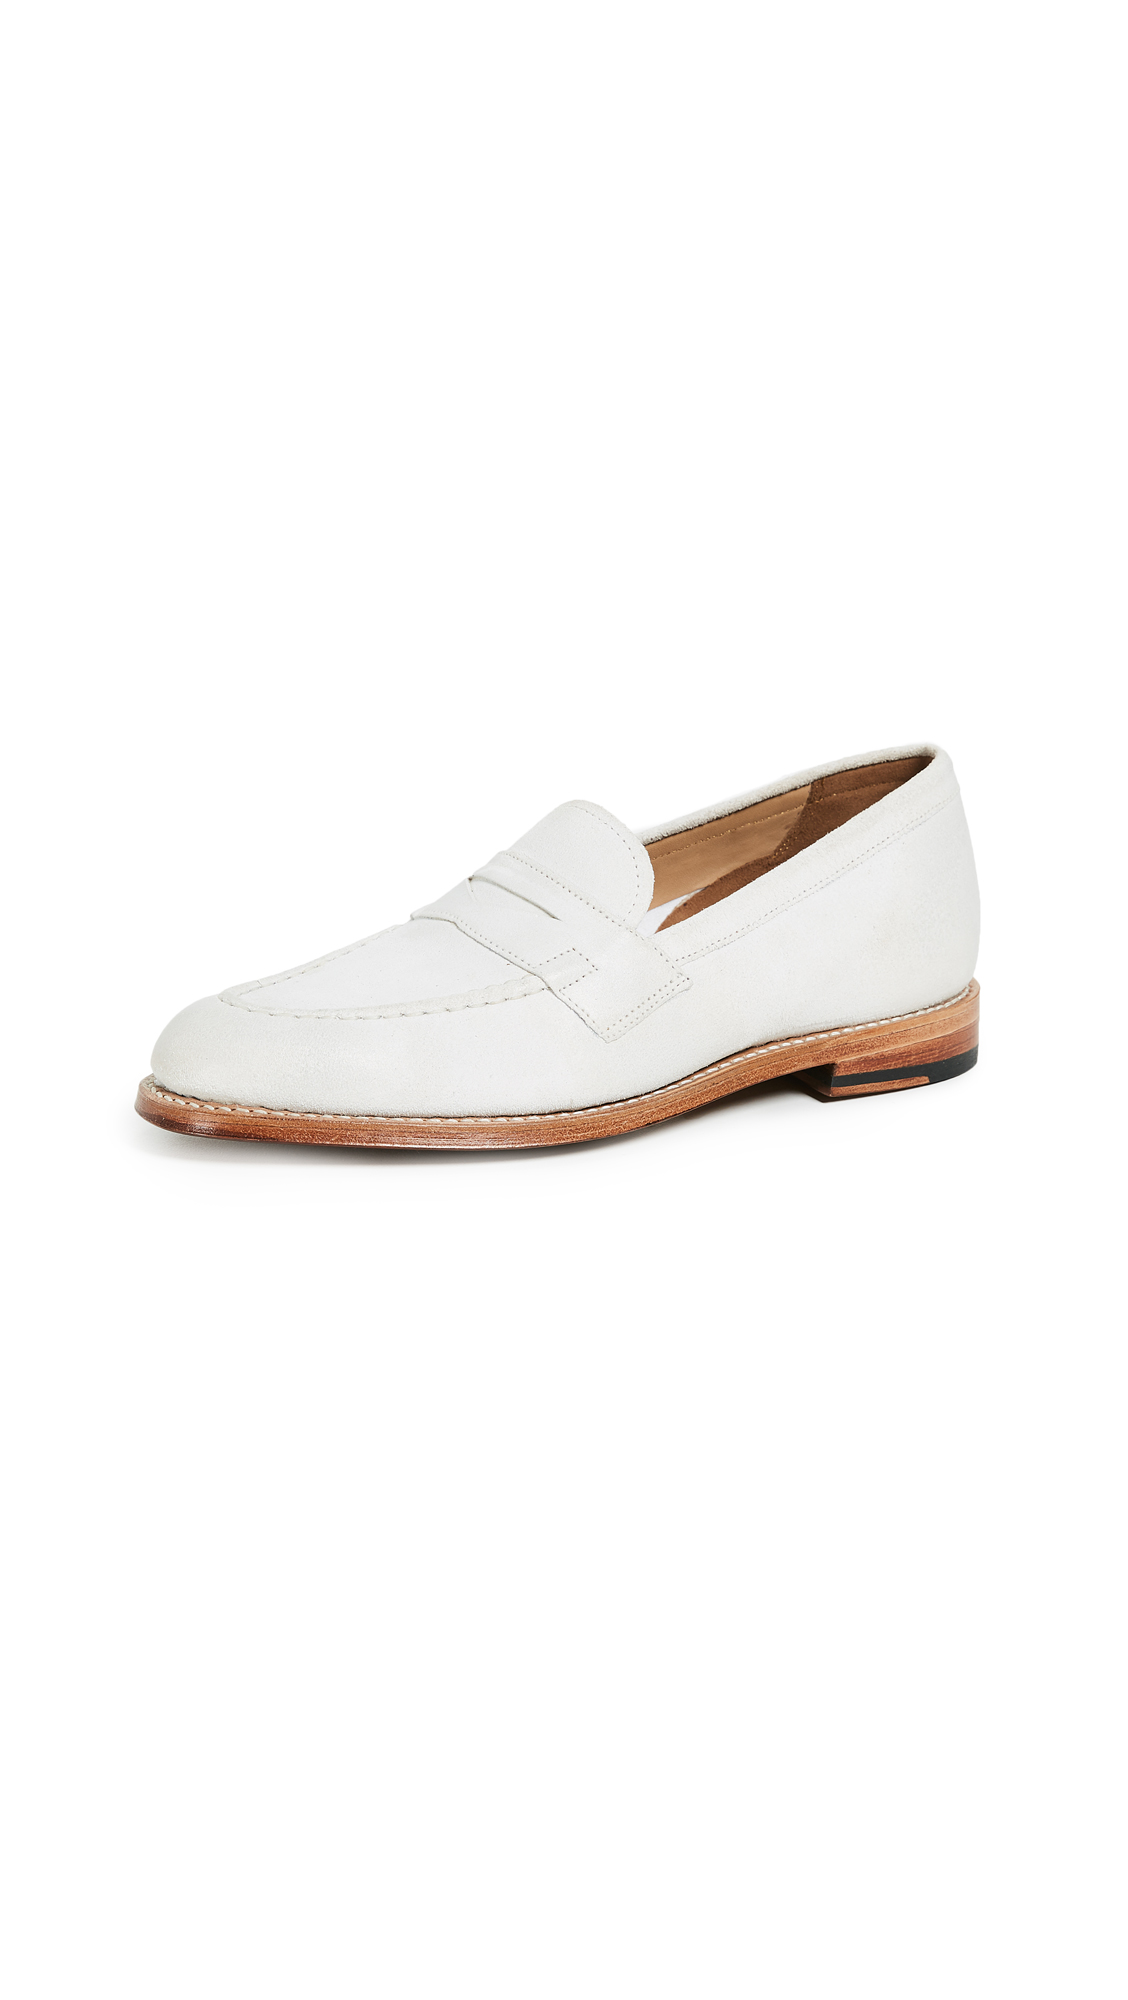 Grenson Fleur Loafers - White Burnishing Suede